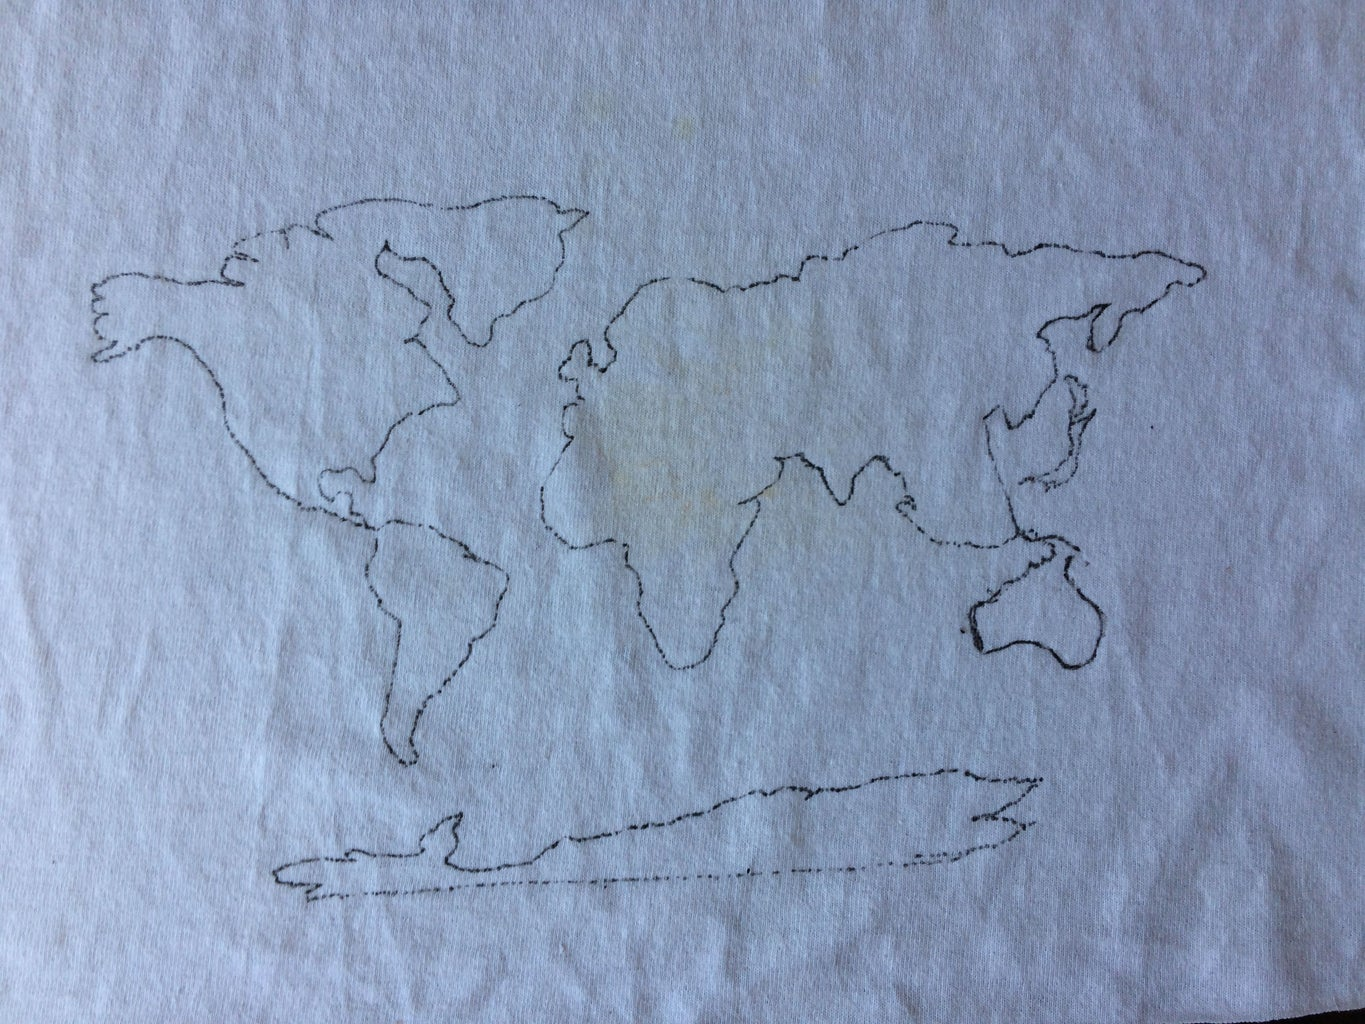 Trace Over the Map